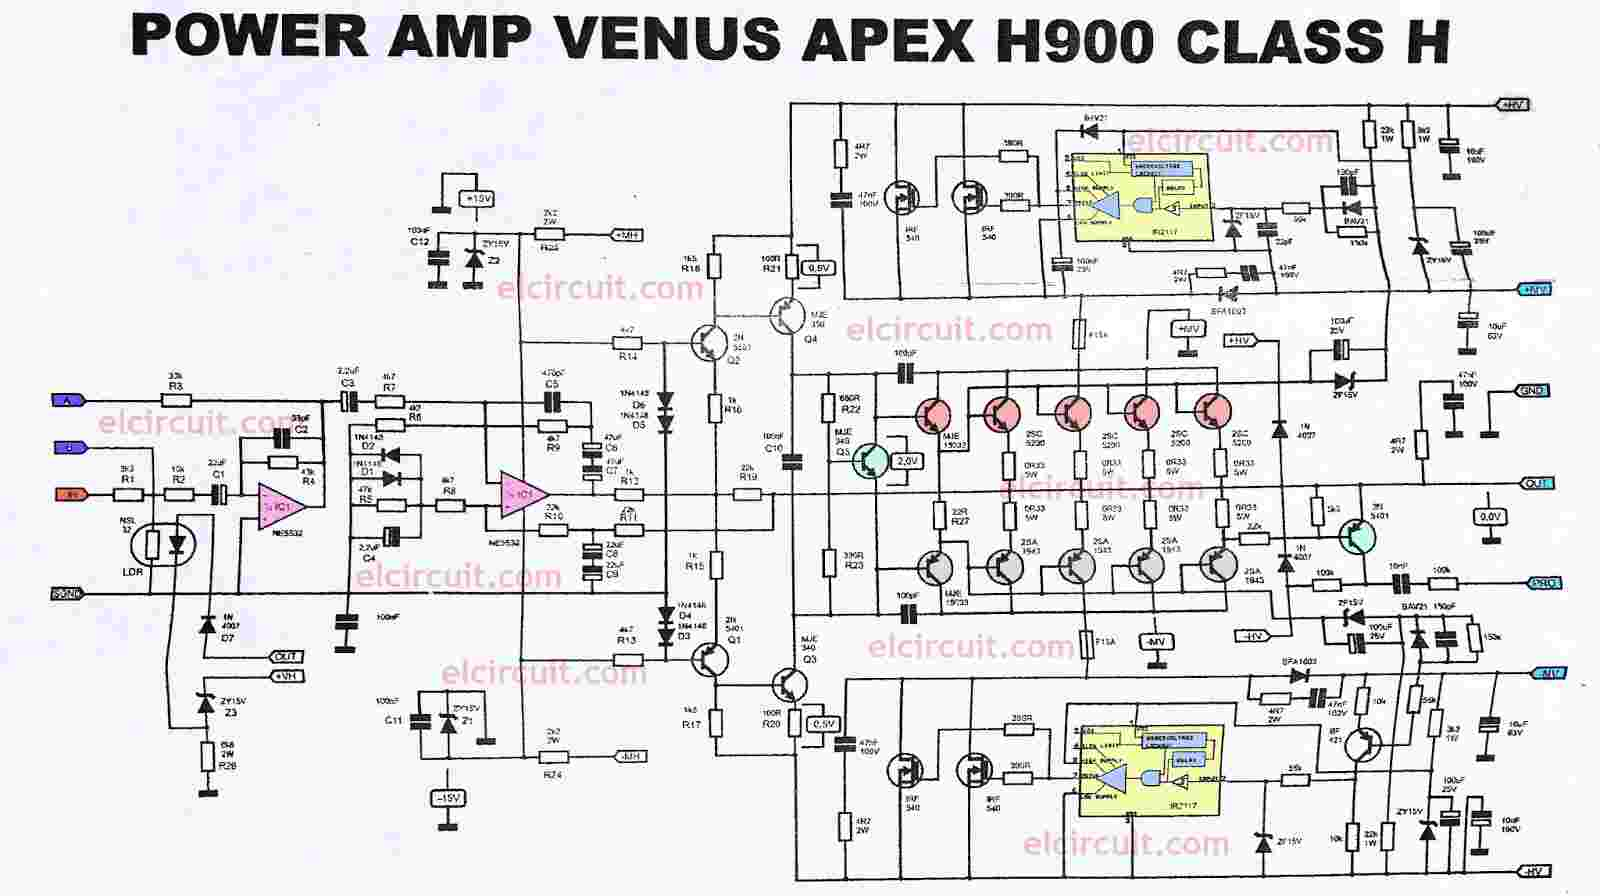 3 Way Component Speakers Wiring Diagram Power Amplifier Apex H900 Efficient Flat And Powerful